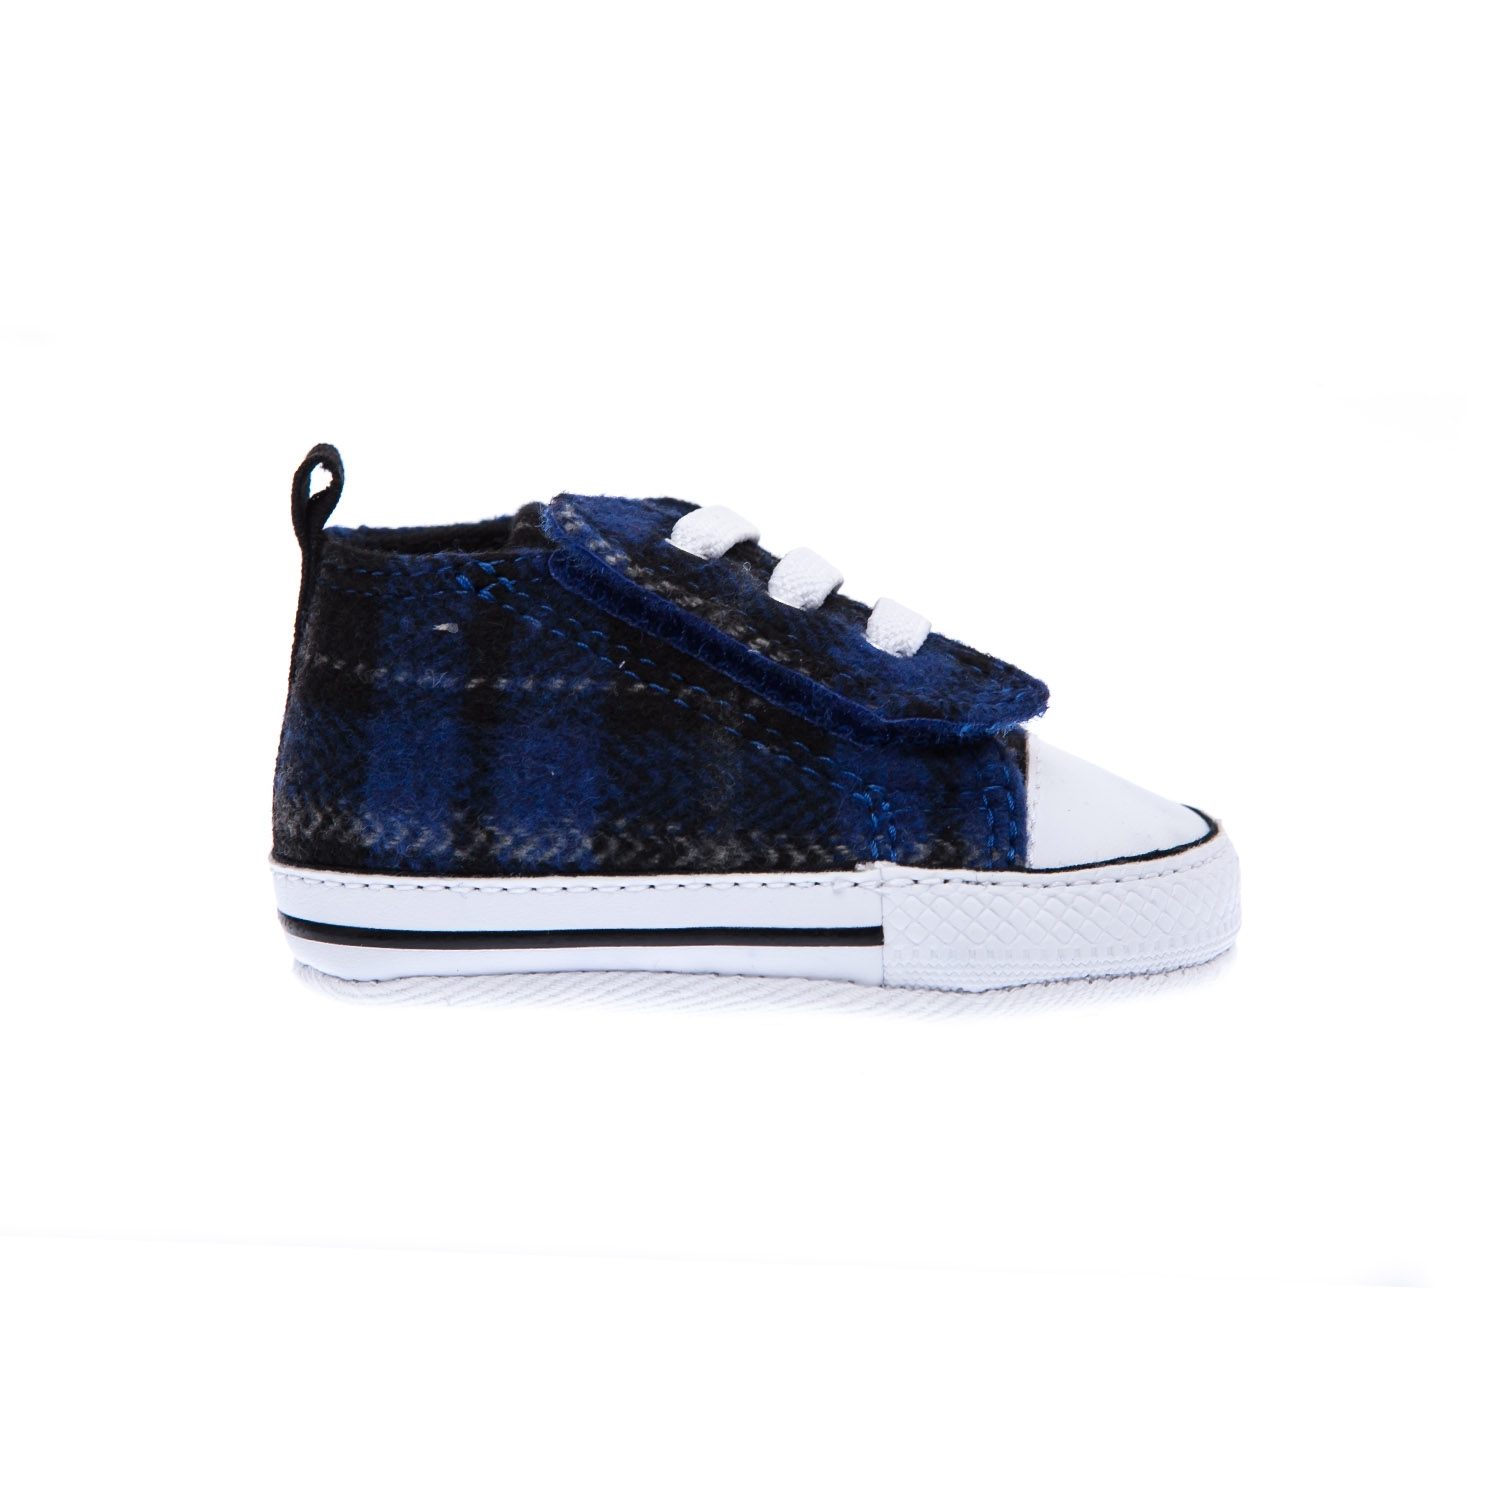 CONVERSE - Βρεφικά παπούτσια Chuck Taylor μπλε παιδικά baby παπούτσια sneakers